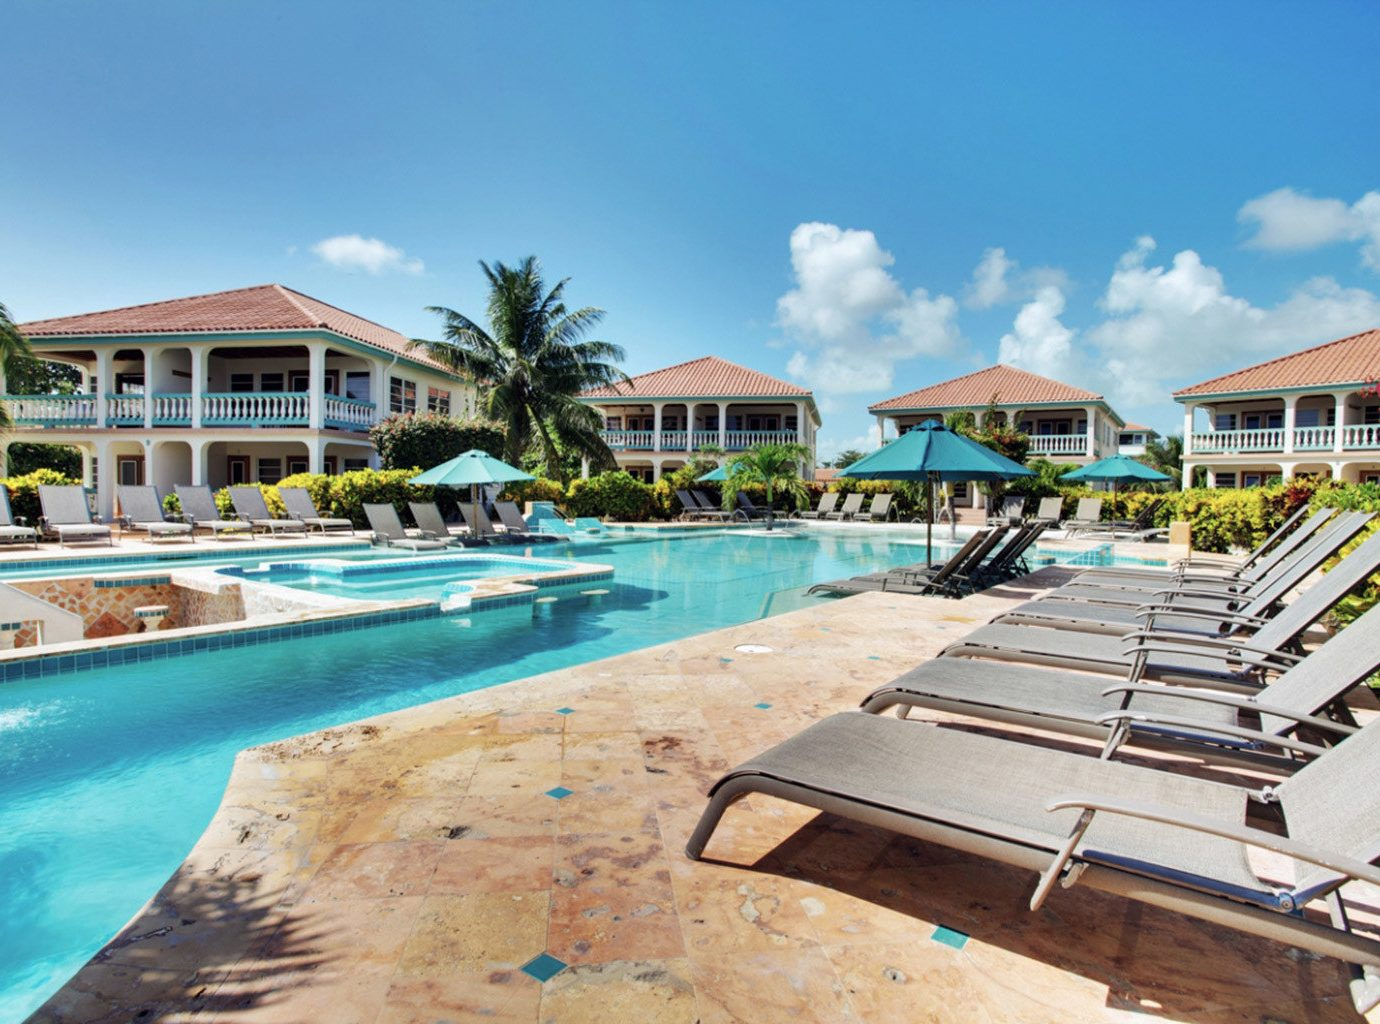 sky leisure Resort property swimming pool dock marina resort town Beach caribbean condominium Water park